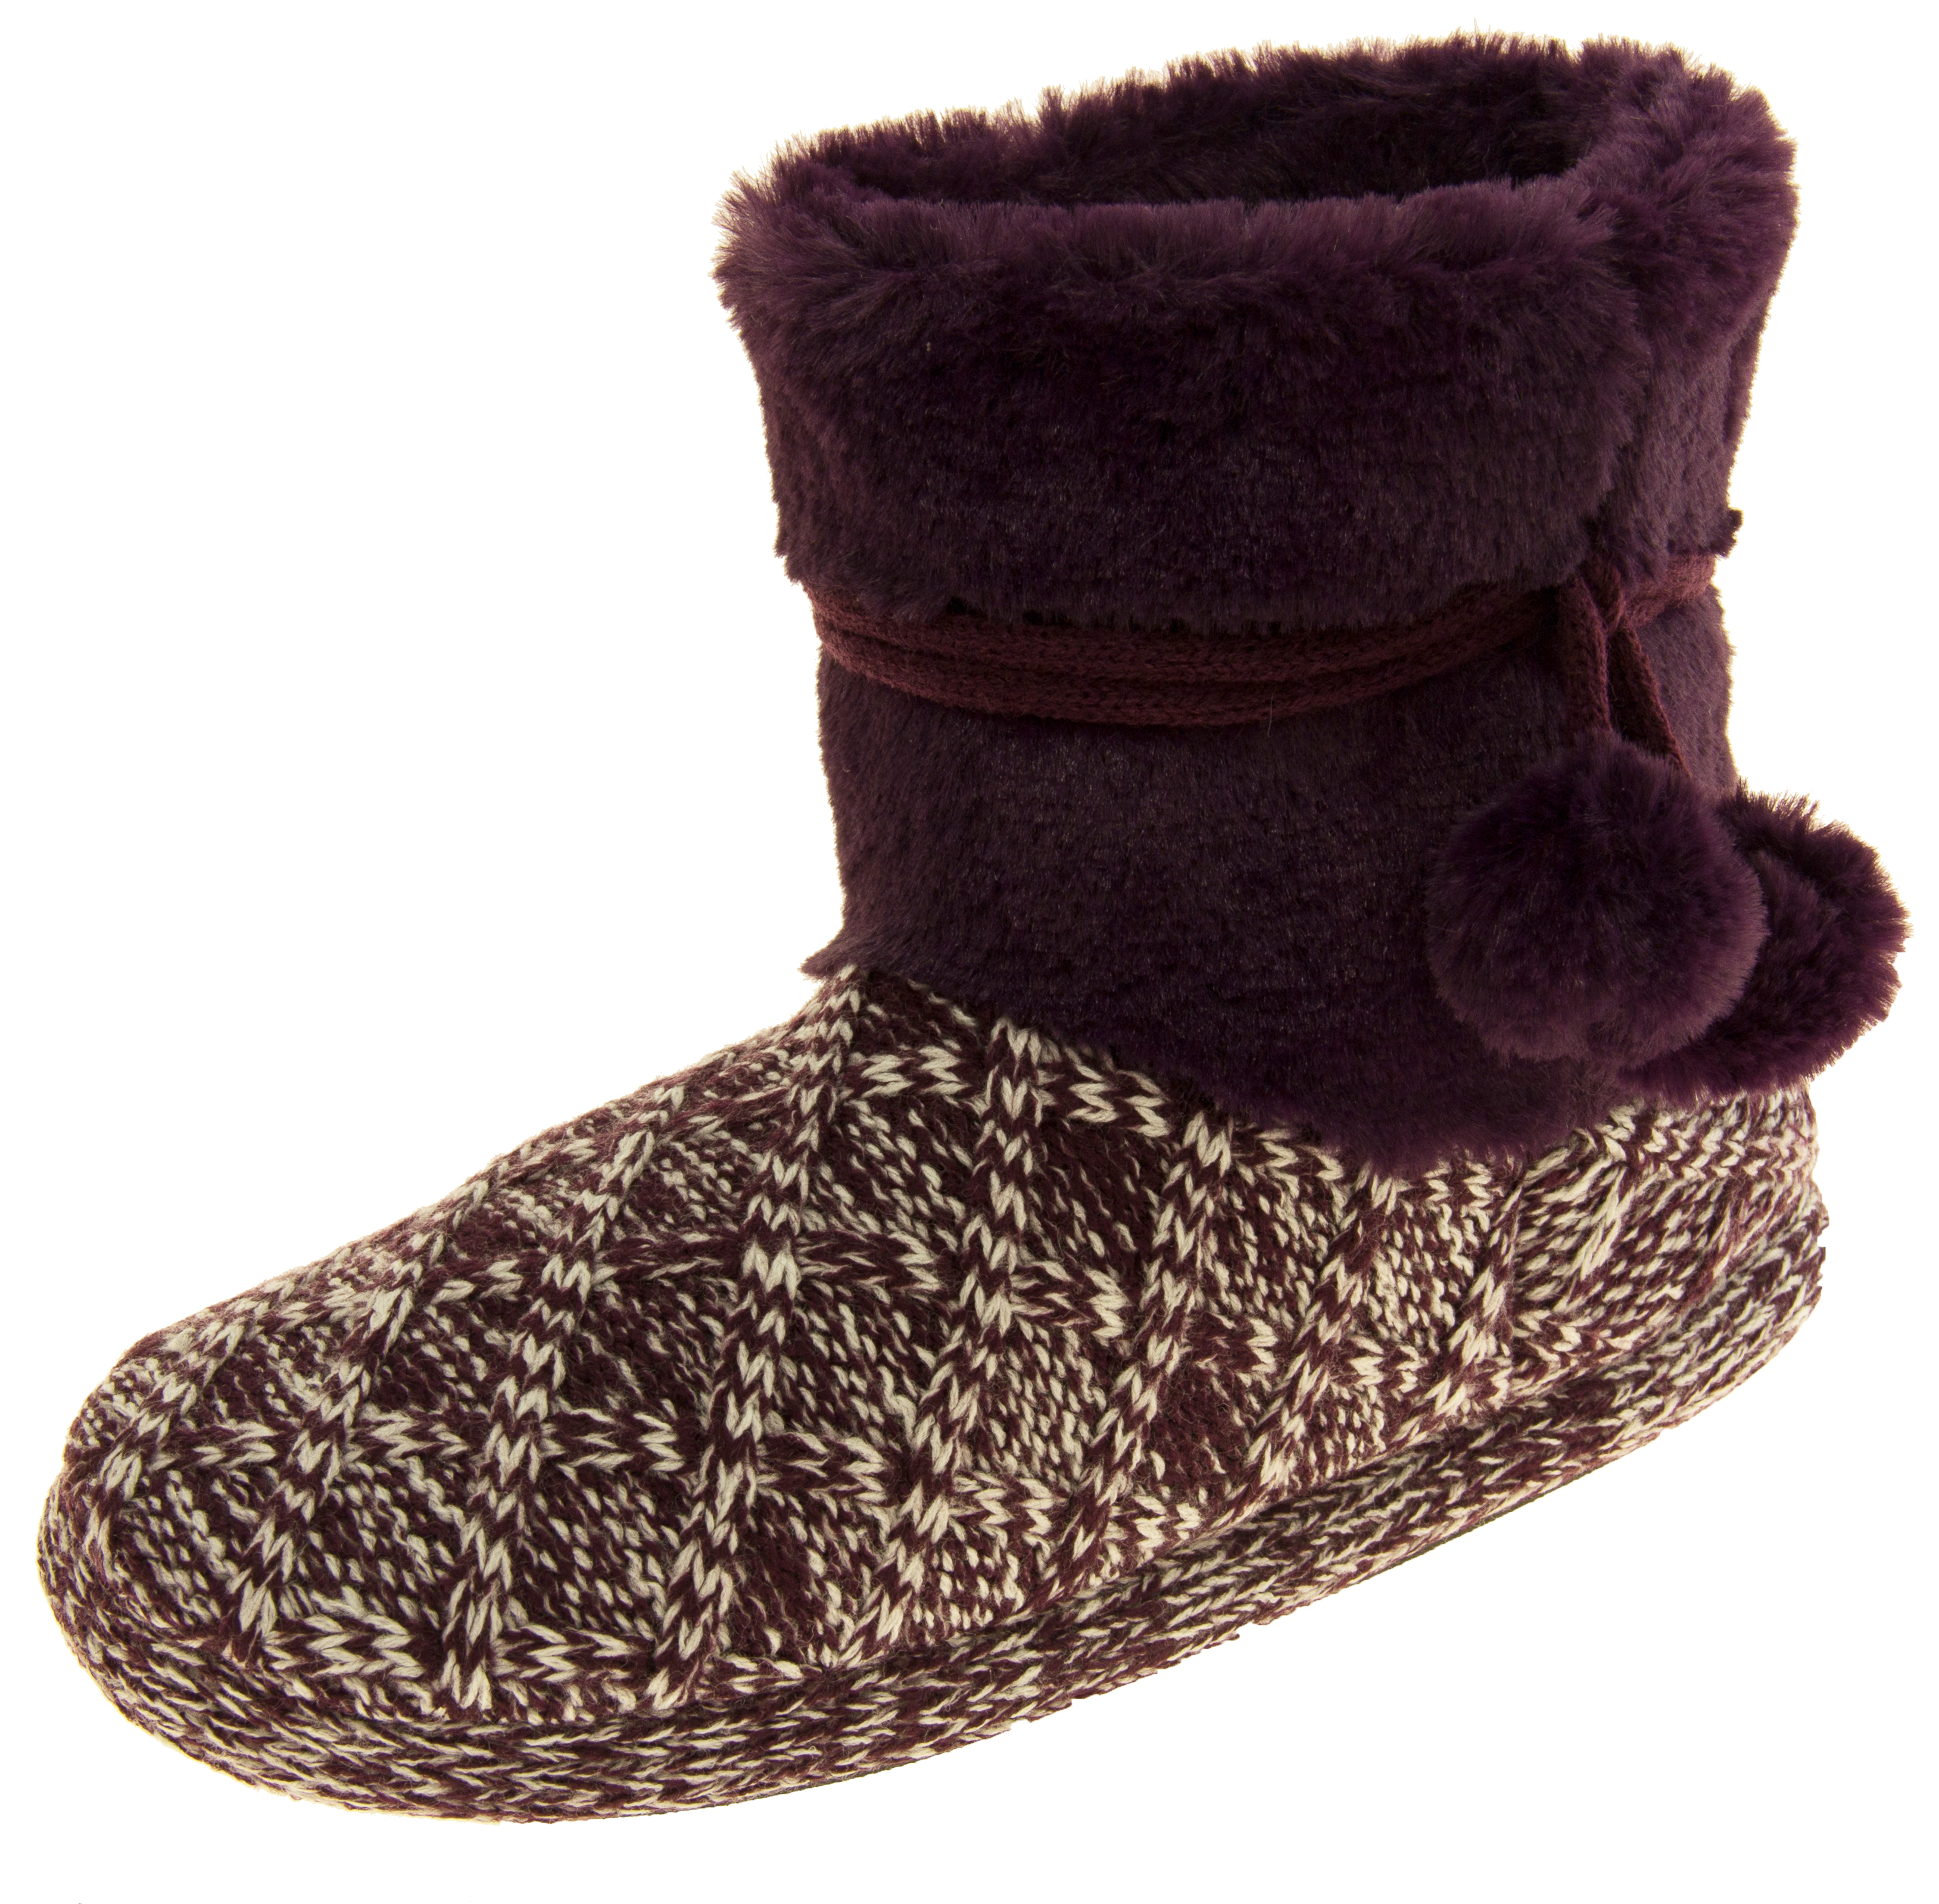 d9f3a35e072ea Details about Ladies Coolers Warm Fur Lined Knitted Pom Pom Slipper Boots  Sz Size 3 4 5 6 7 8